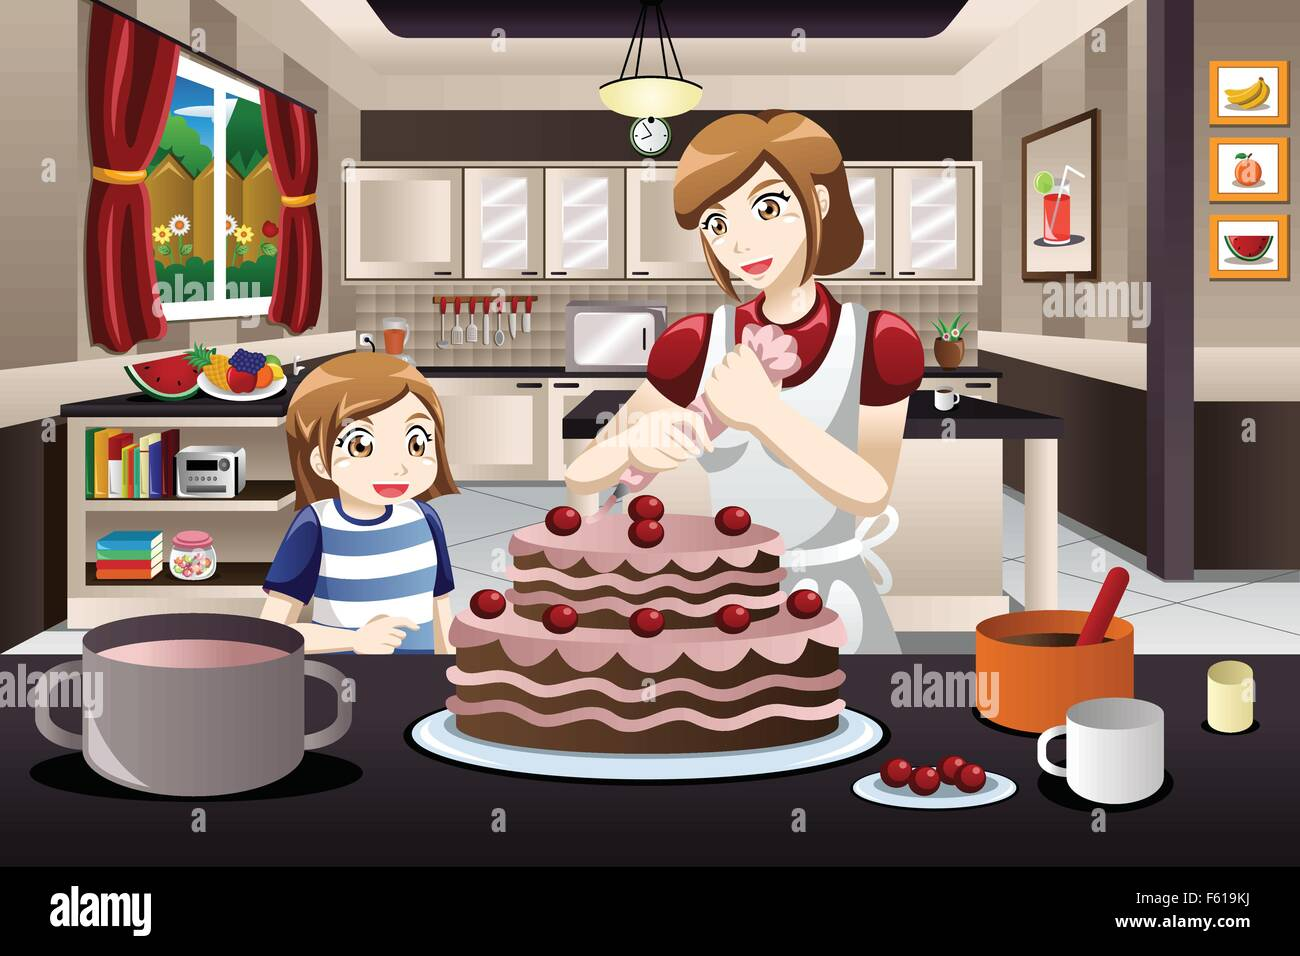 A vector illustration of mother and her daughter decorating a cake together - Stock Vector